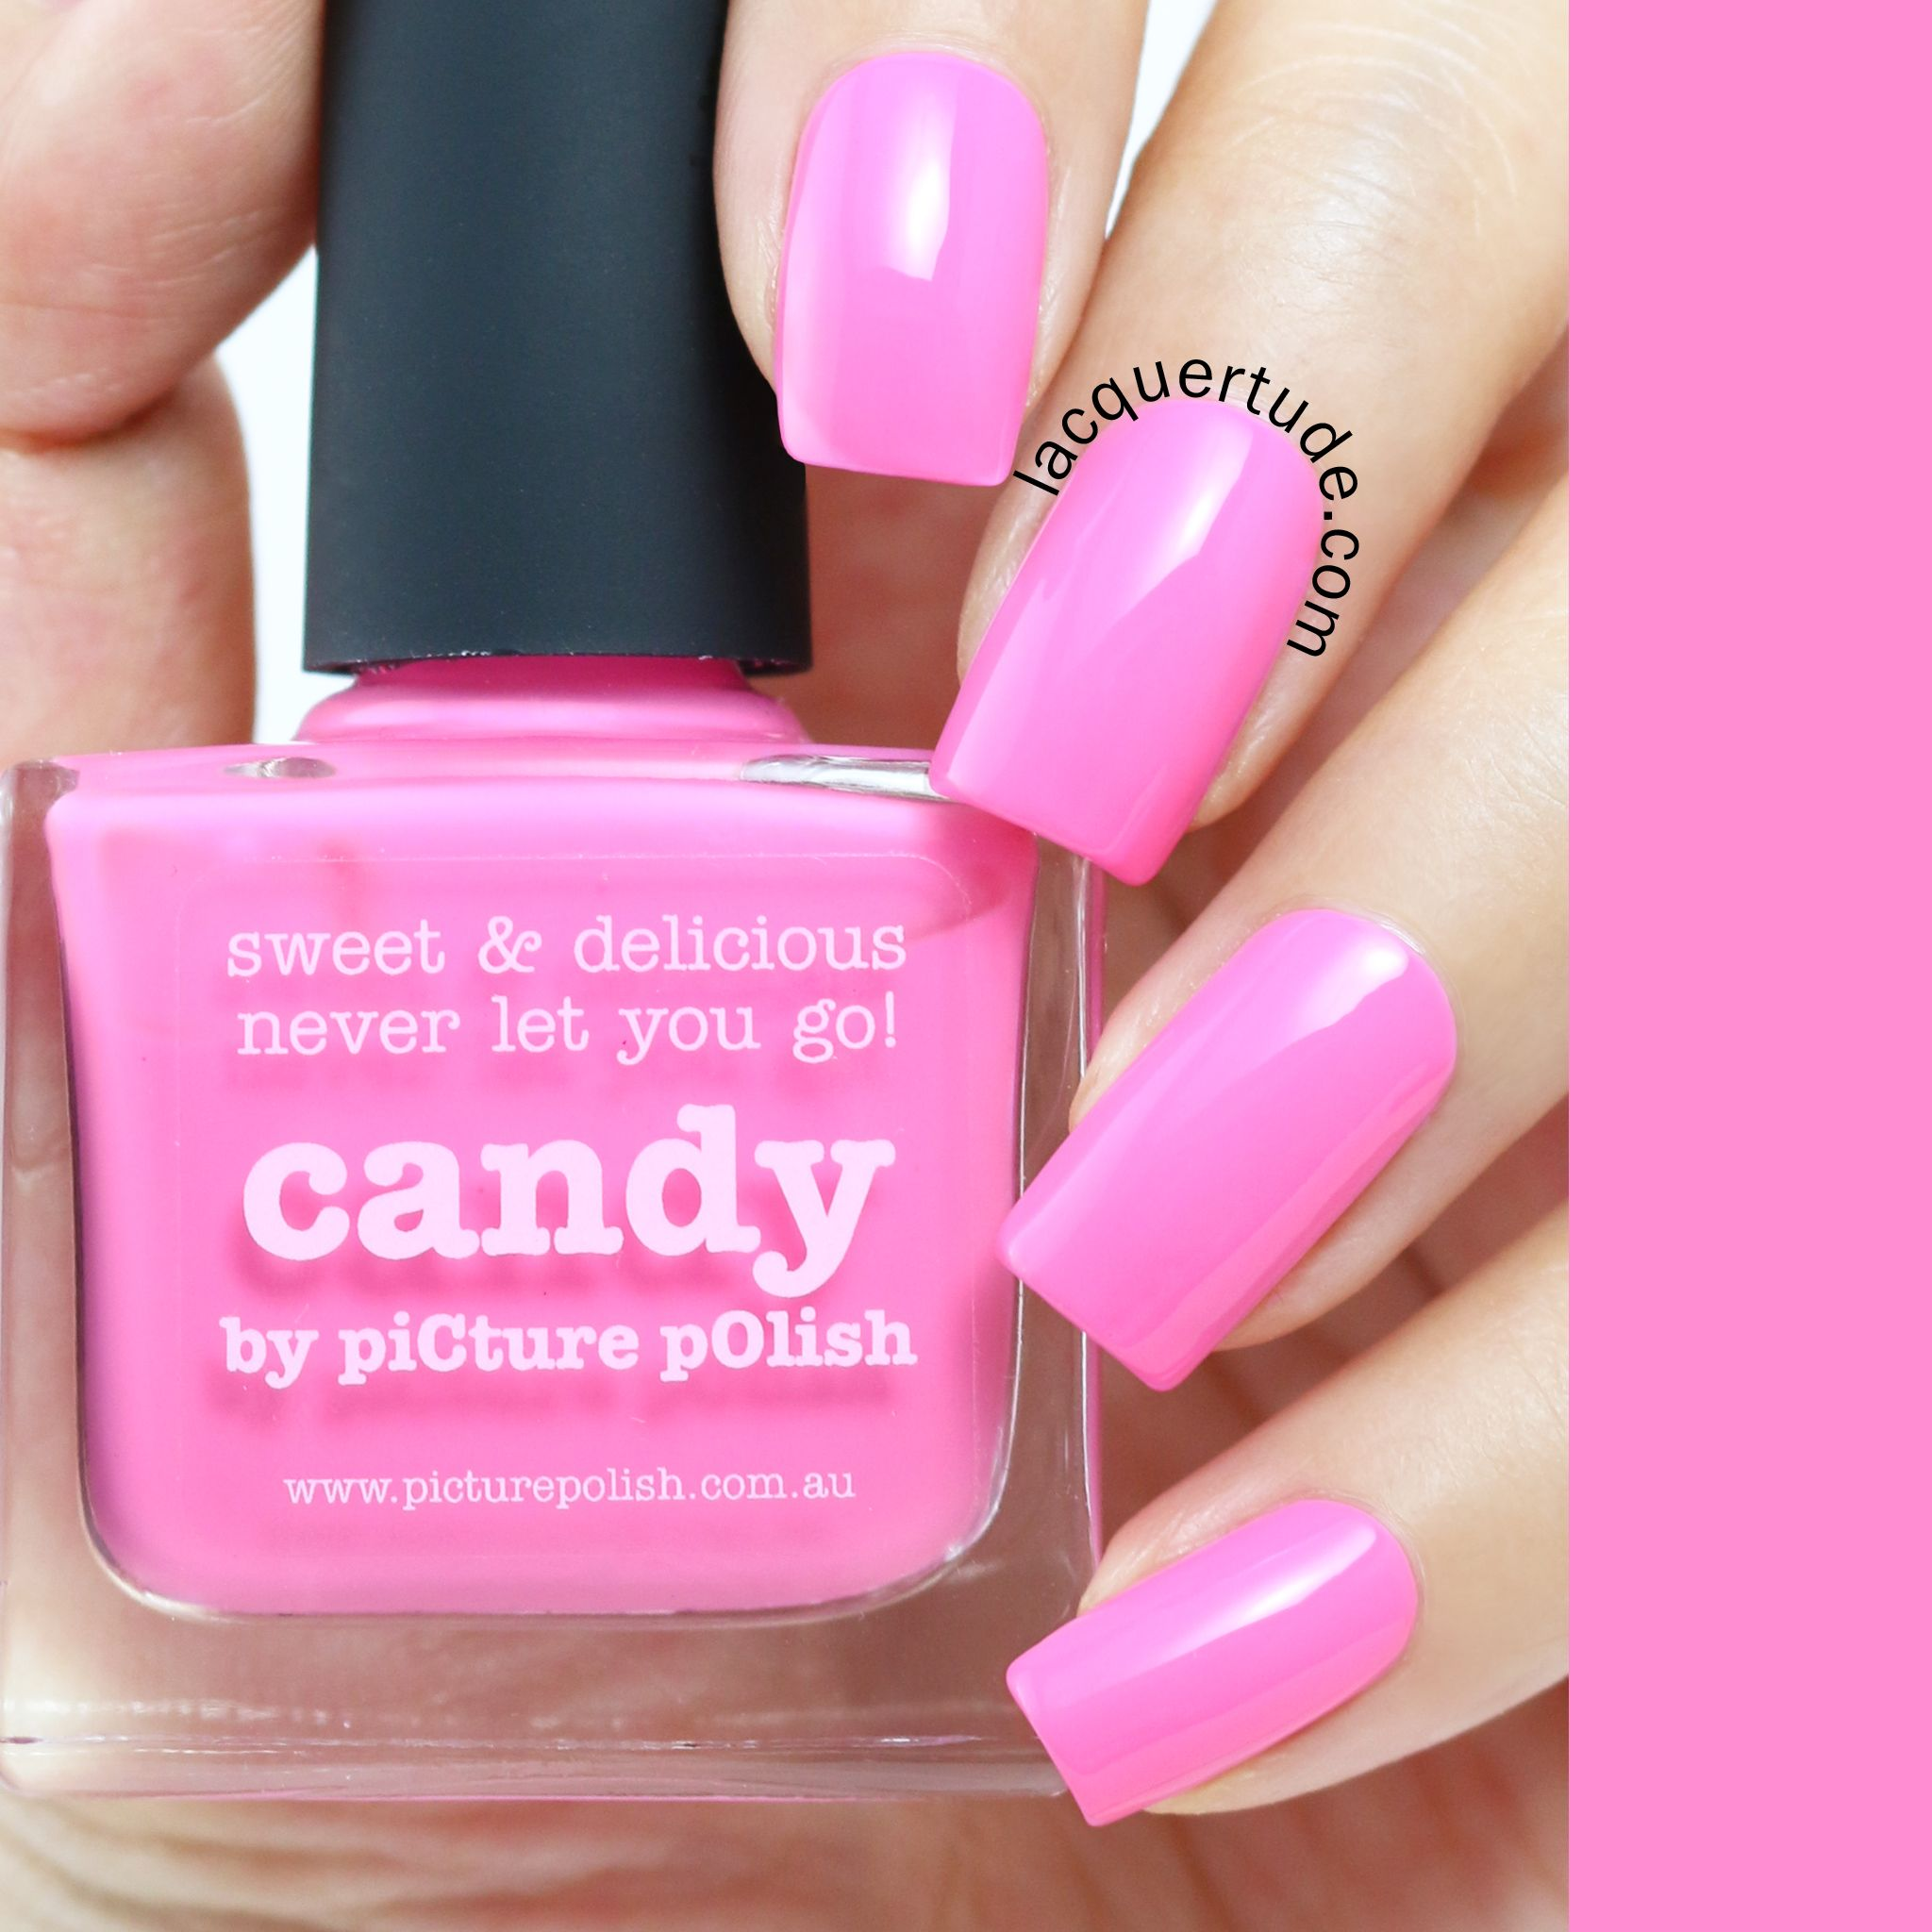 Nail Polish Stores In Dubai - To Bend Light